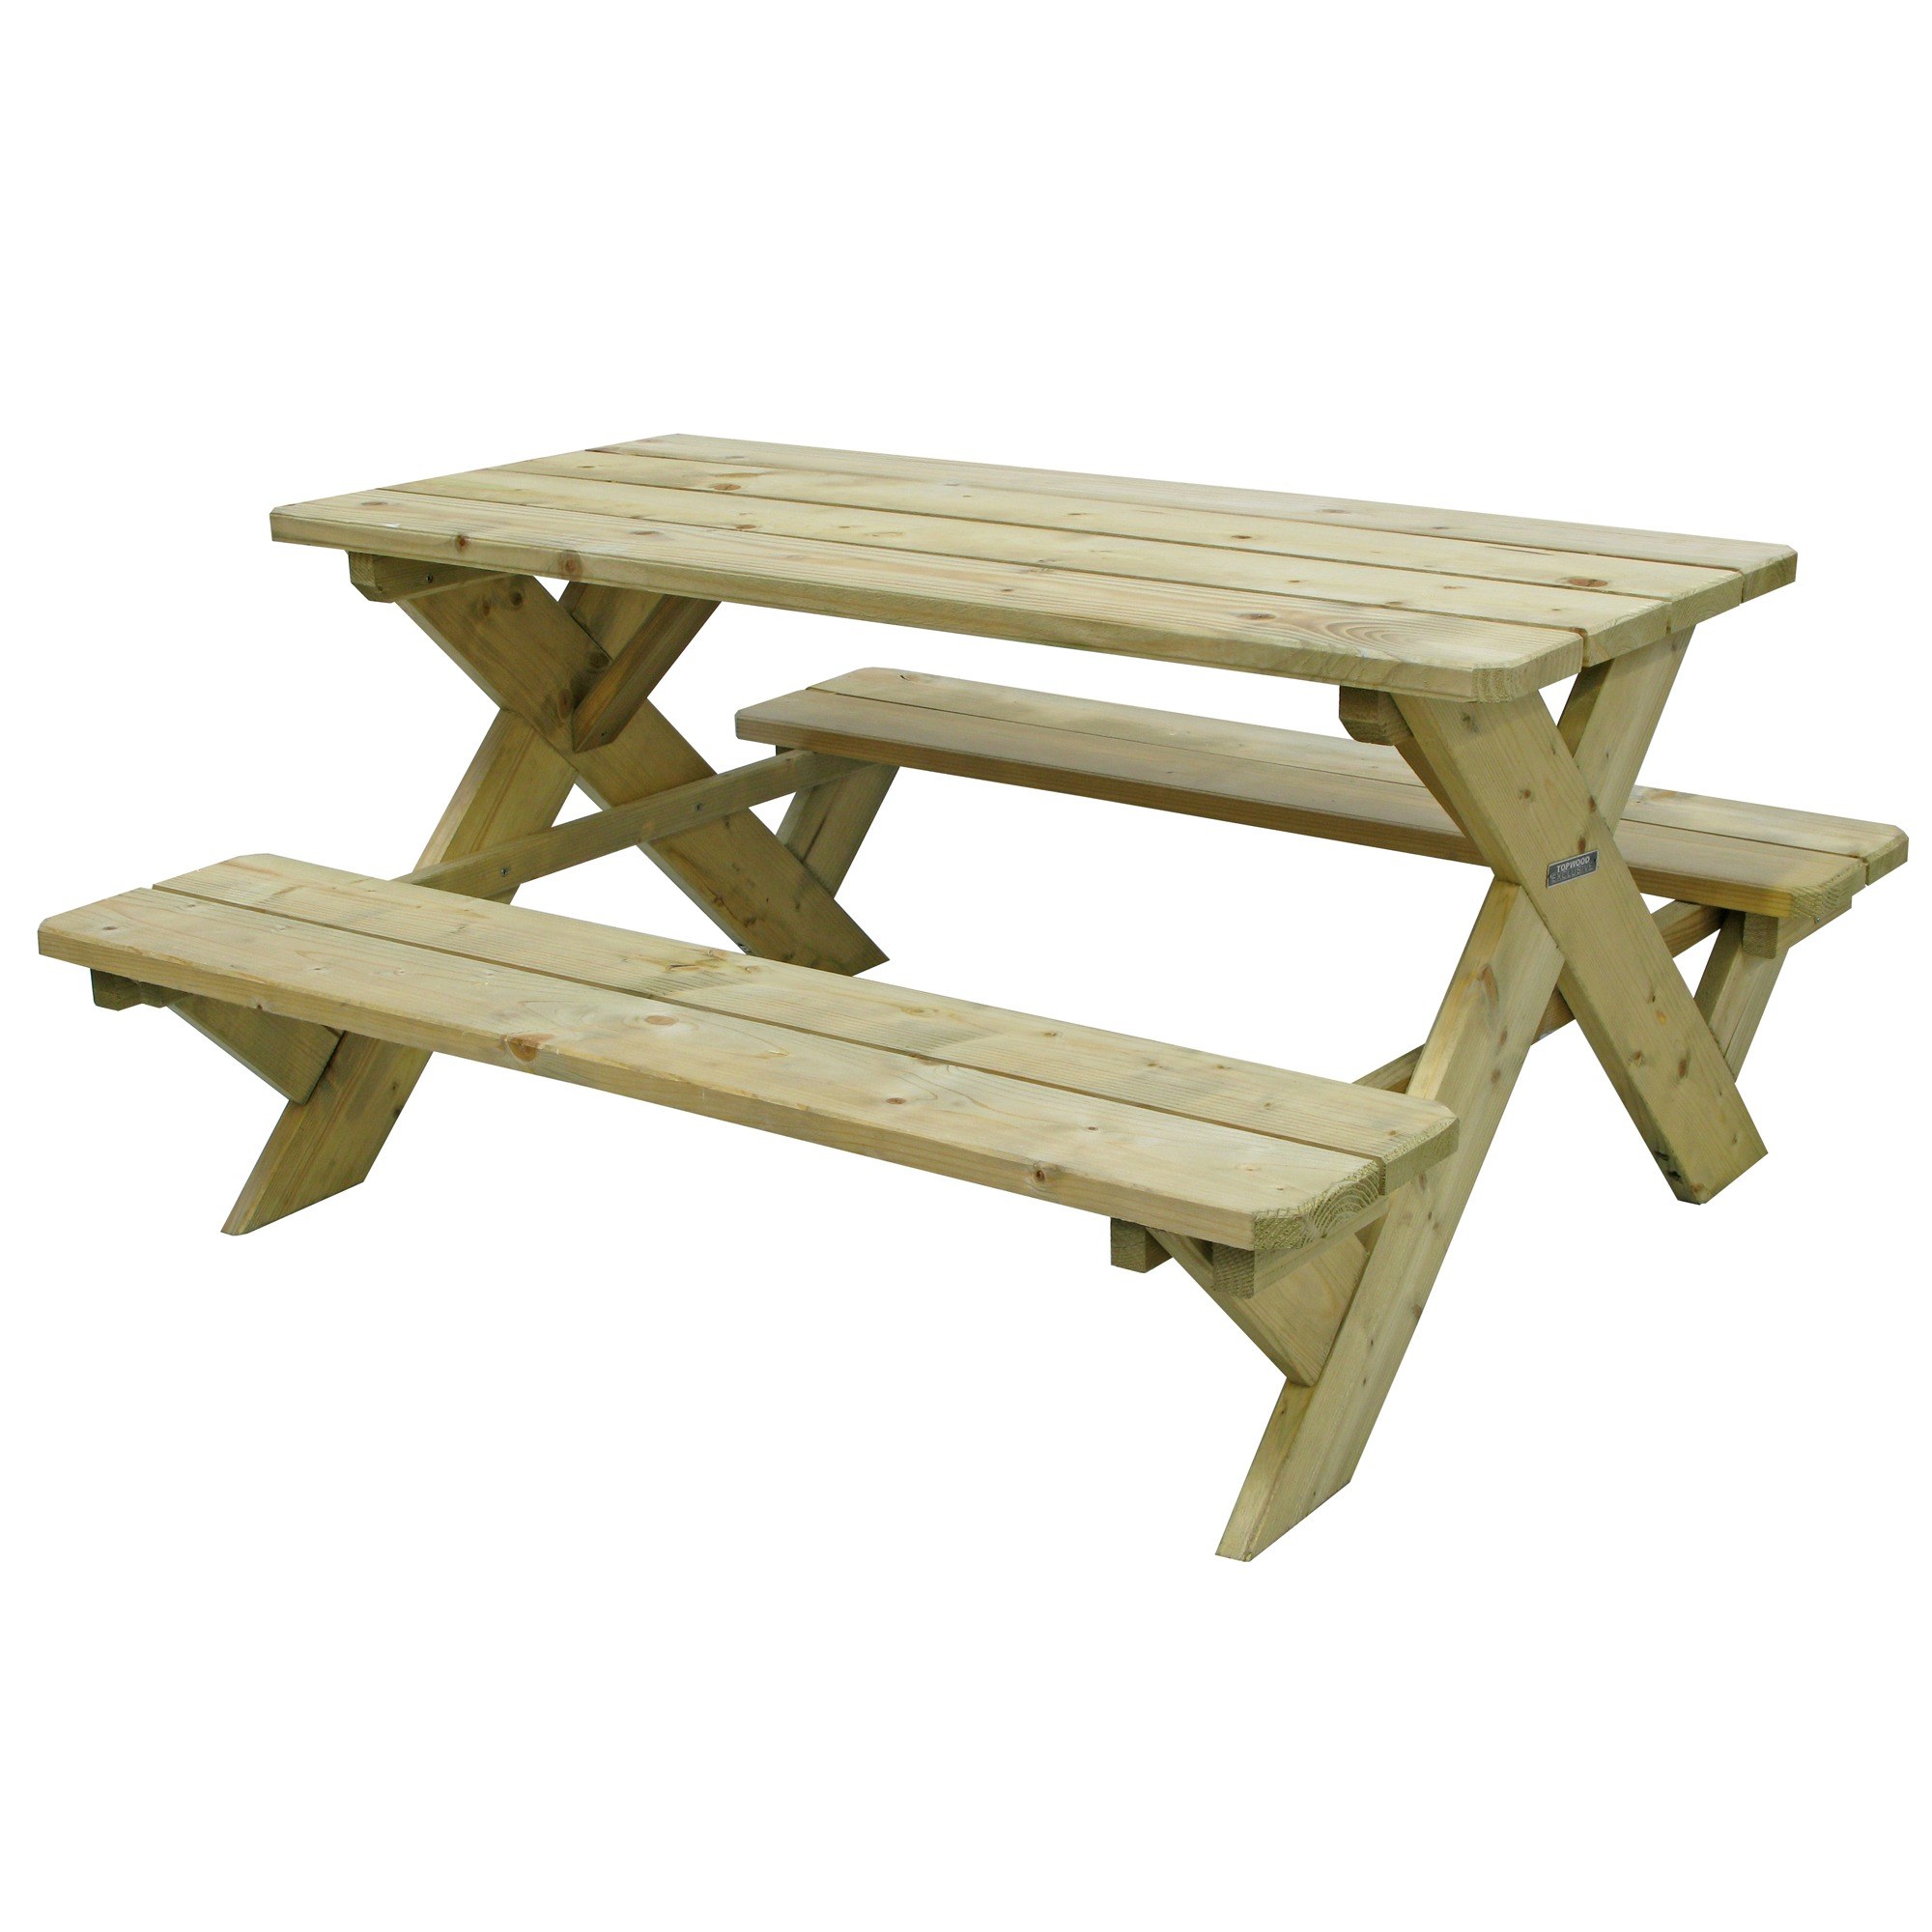 Outdoor Life Products picknicktafel kinderen